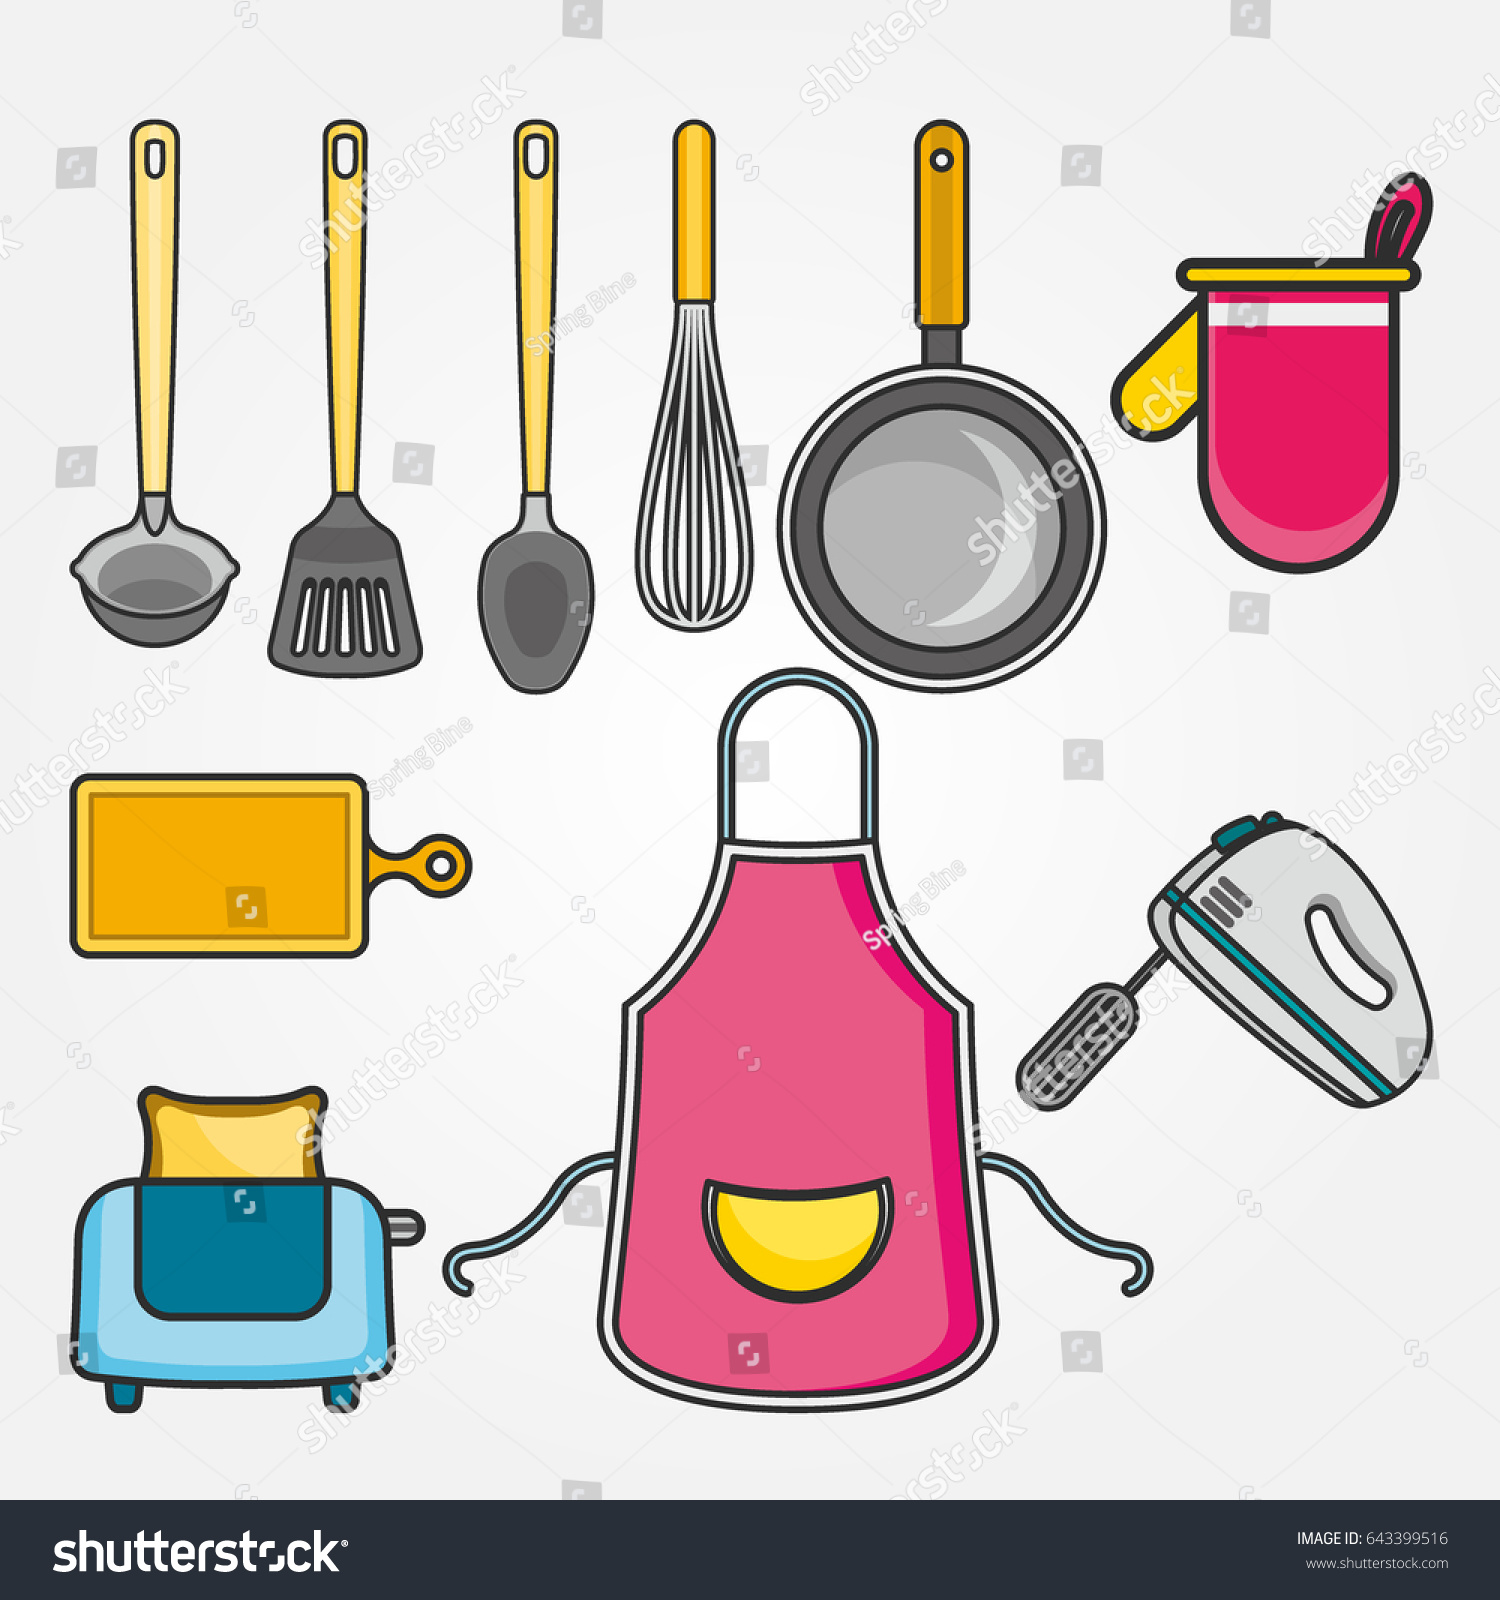 kitchen utensils set modern flat icons stock vector 643399516 kitchen utensils set modern flat icons set graphic elements objects for website